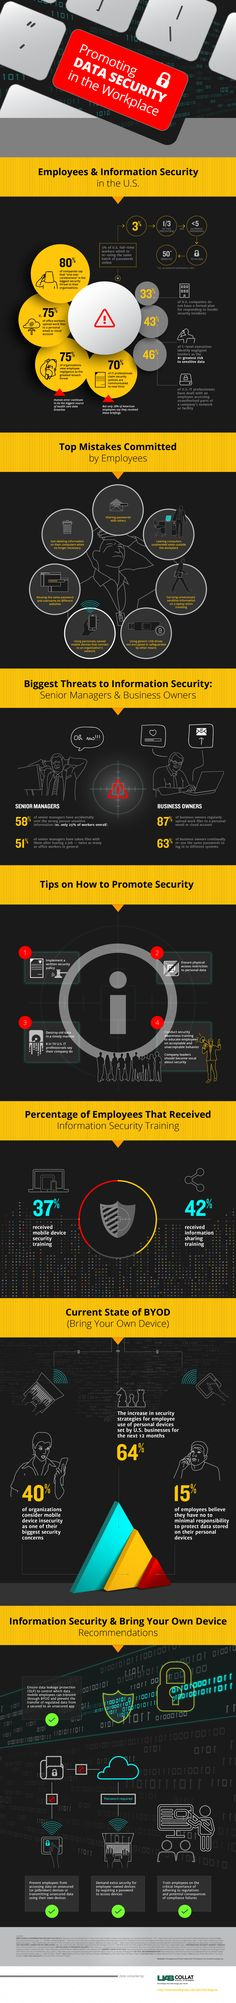 Promoting-Data-Security-in-the-Workplace-UAB